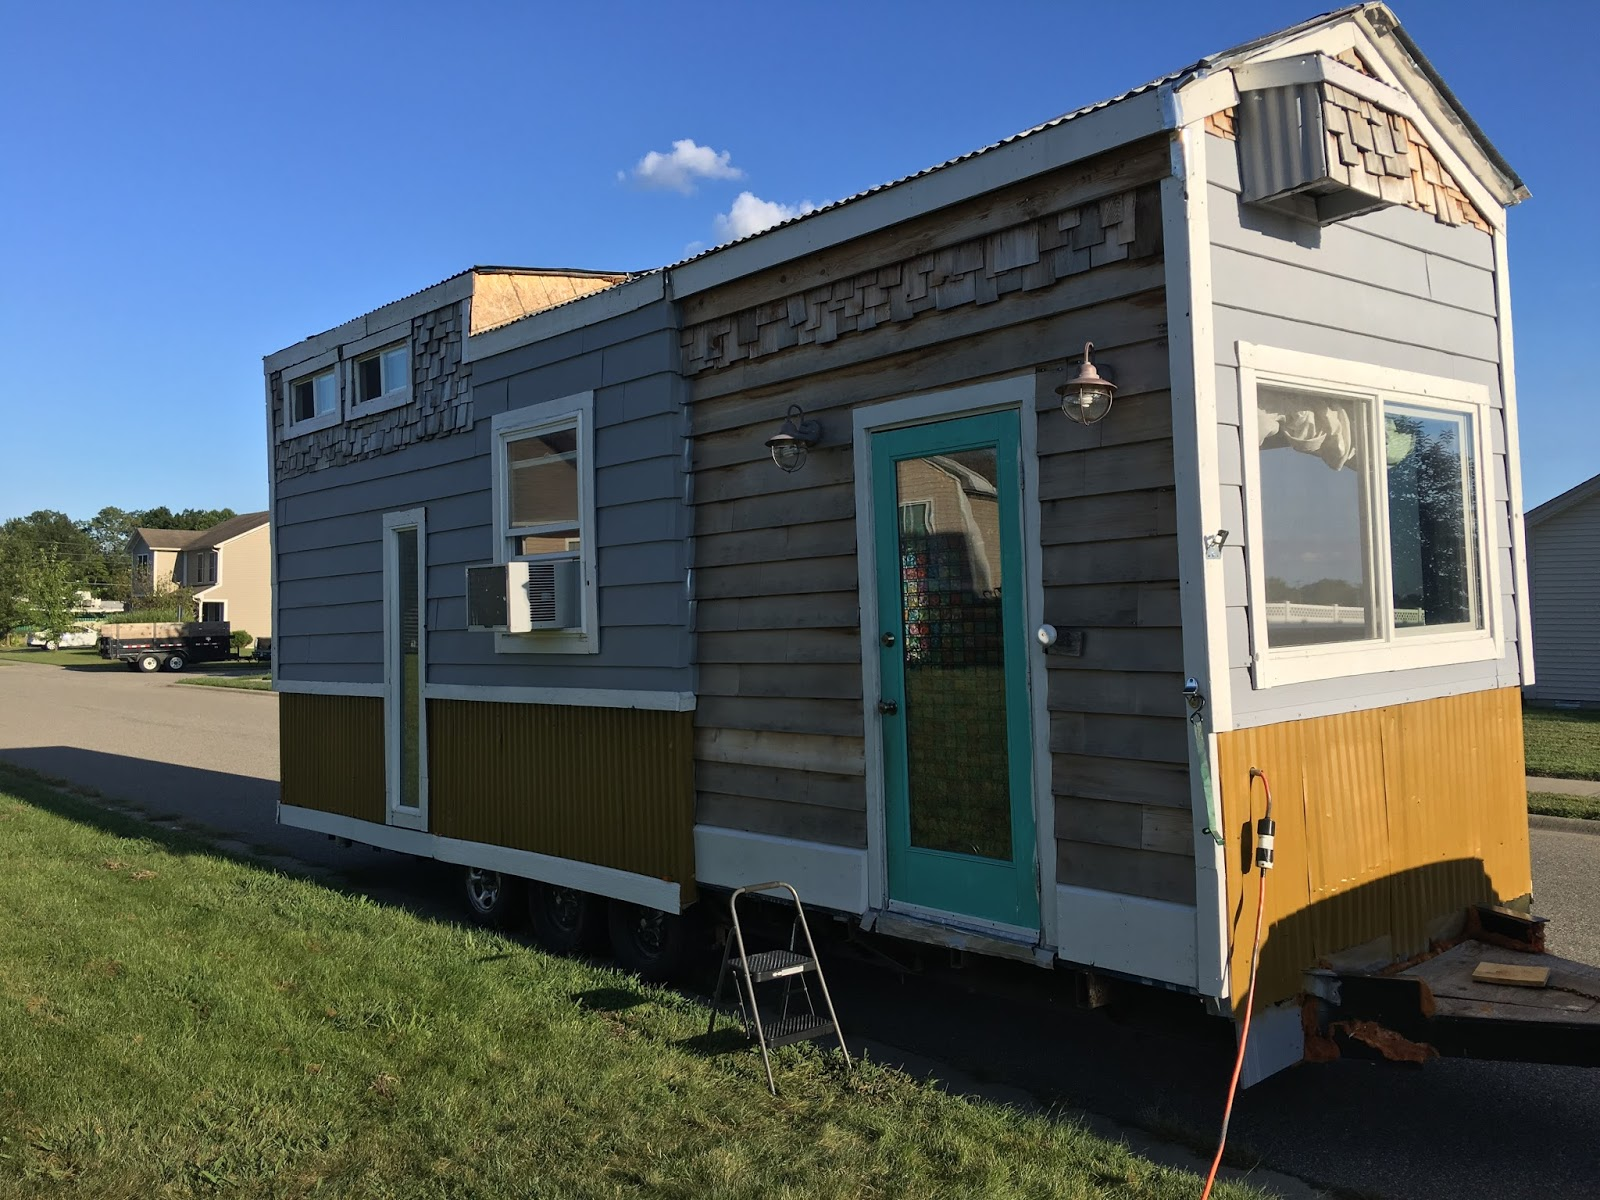 Southern Indiana Tiny House 299 Sq Ft TINY HOUSE TOWN